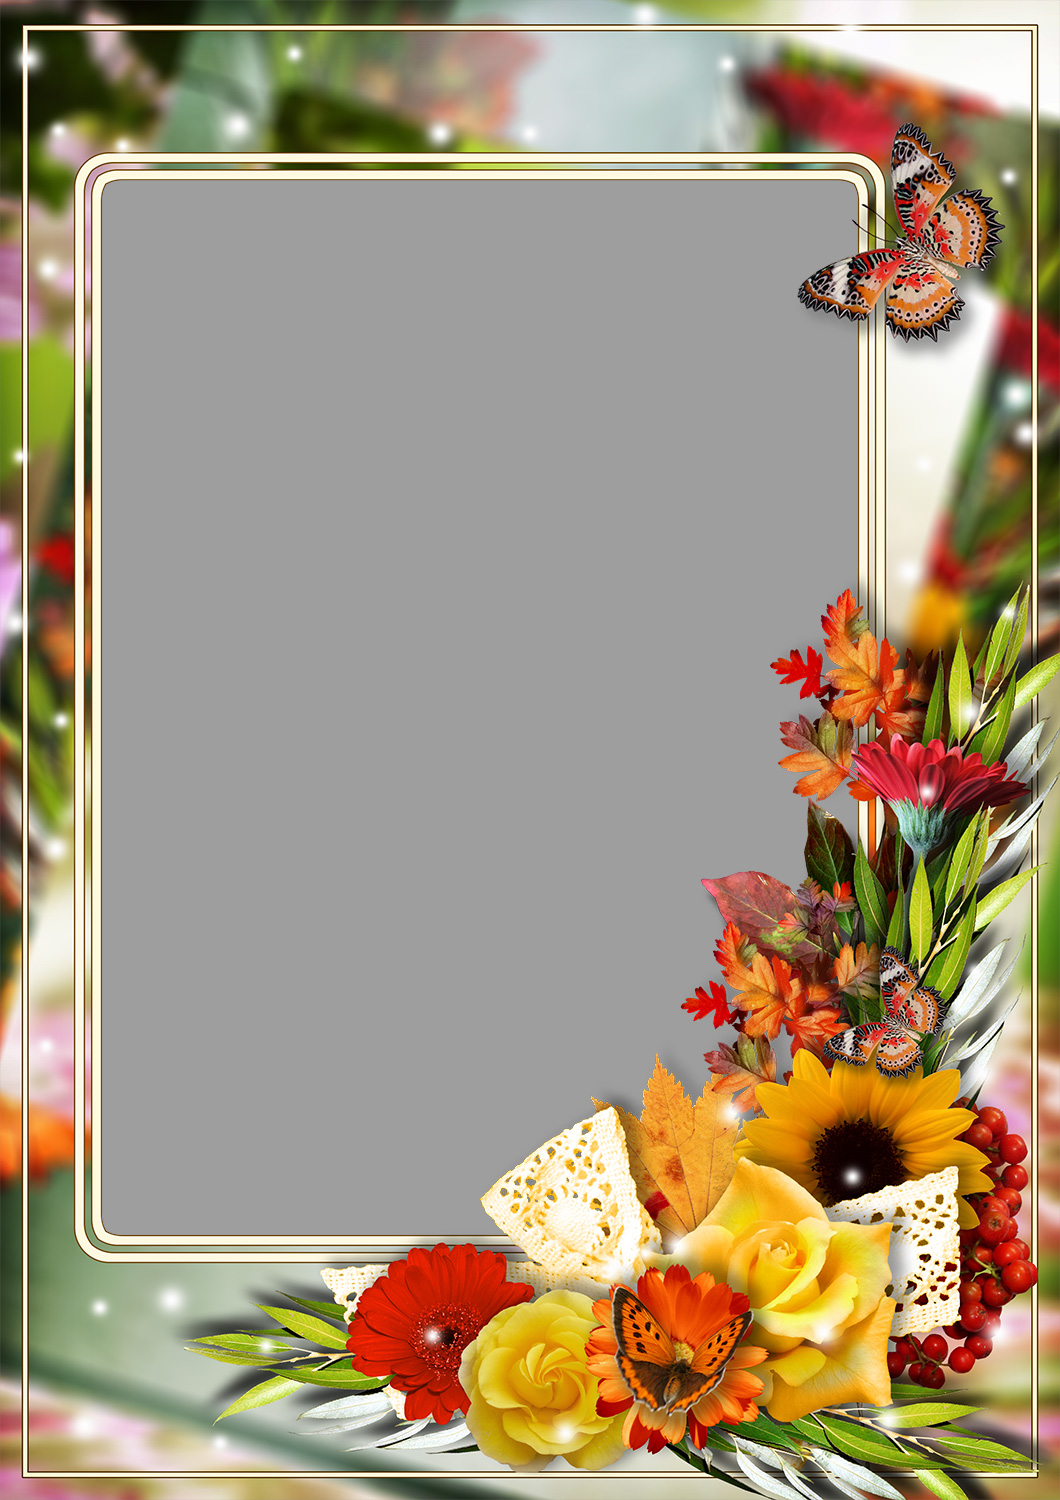 Flowers Photo Frames   LoonaPix - Roses, Tulips, Poppies